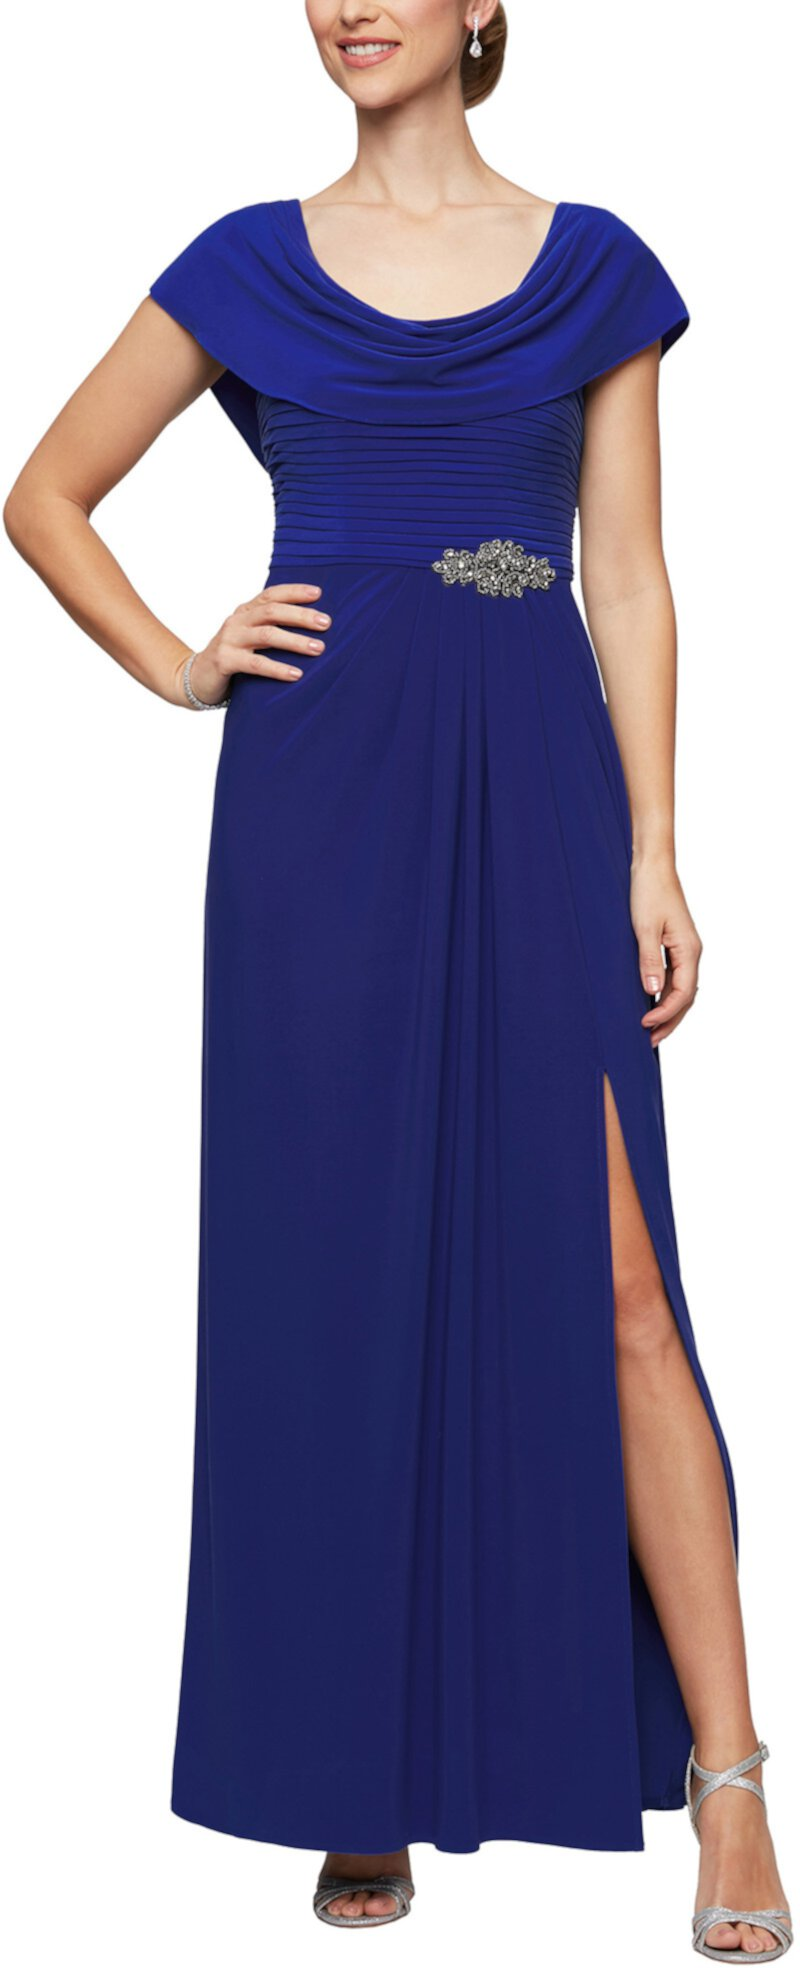 Long Cowl Neck A-Line Dress with Beaded Detail at Waist Alex Evenings